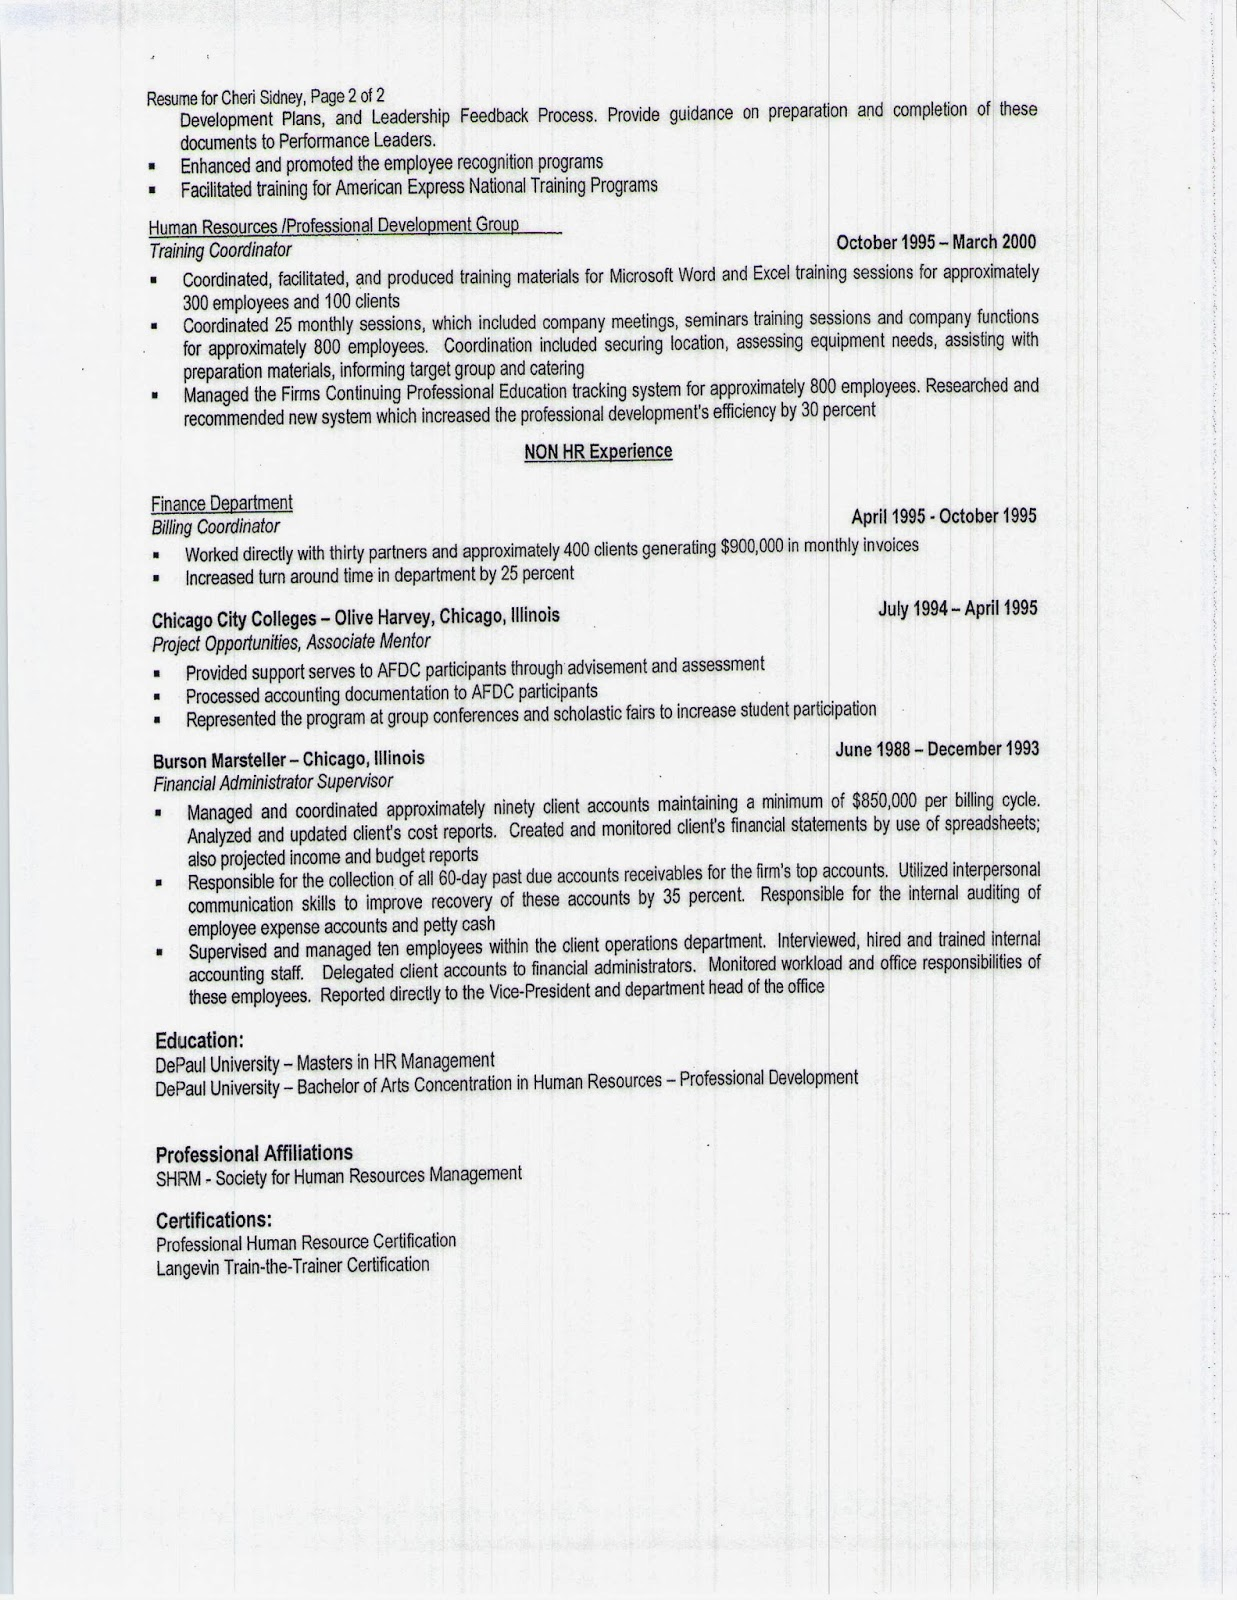 027 Essay Example Nursing Application Tips How To Write An Letter With Apply Forhip And Sidney0001 Jpg W 1237x1600px Singular Scholarship Gilman Psc Goldwater Full